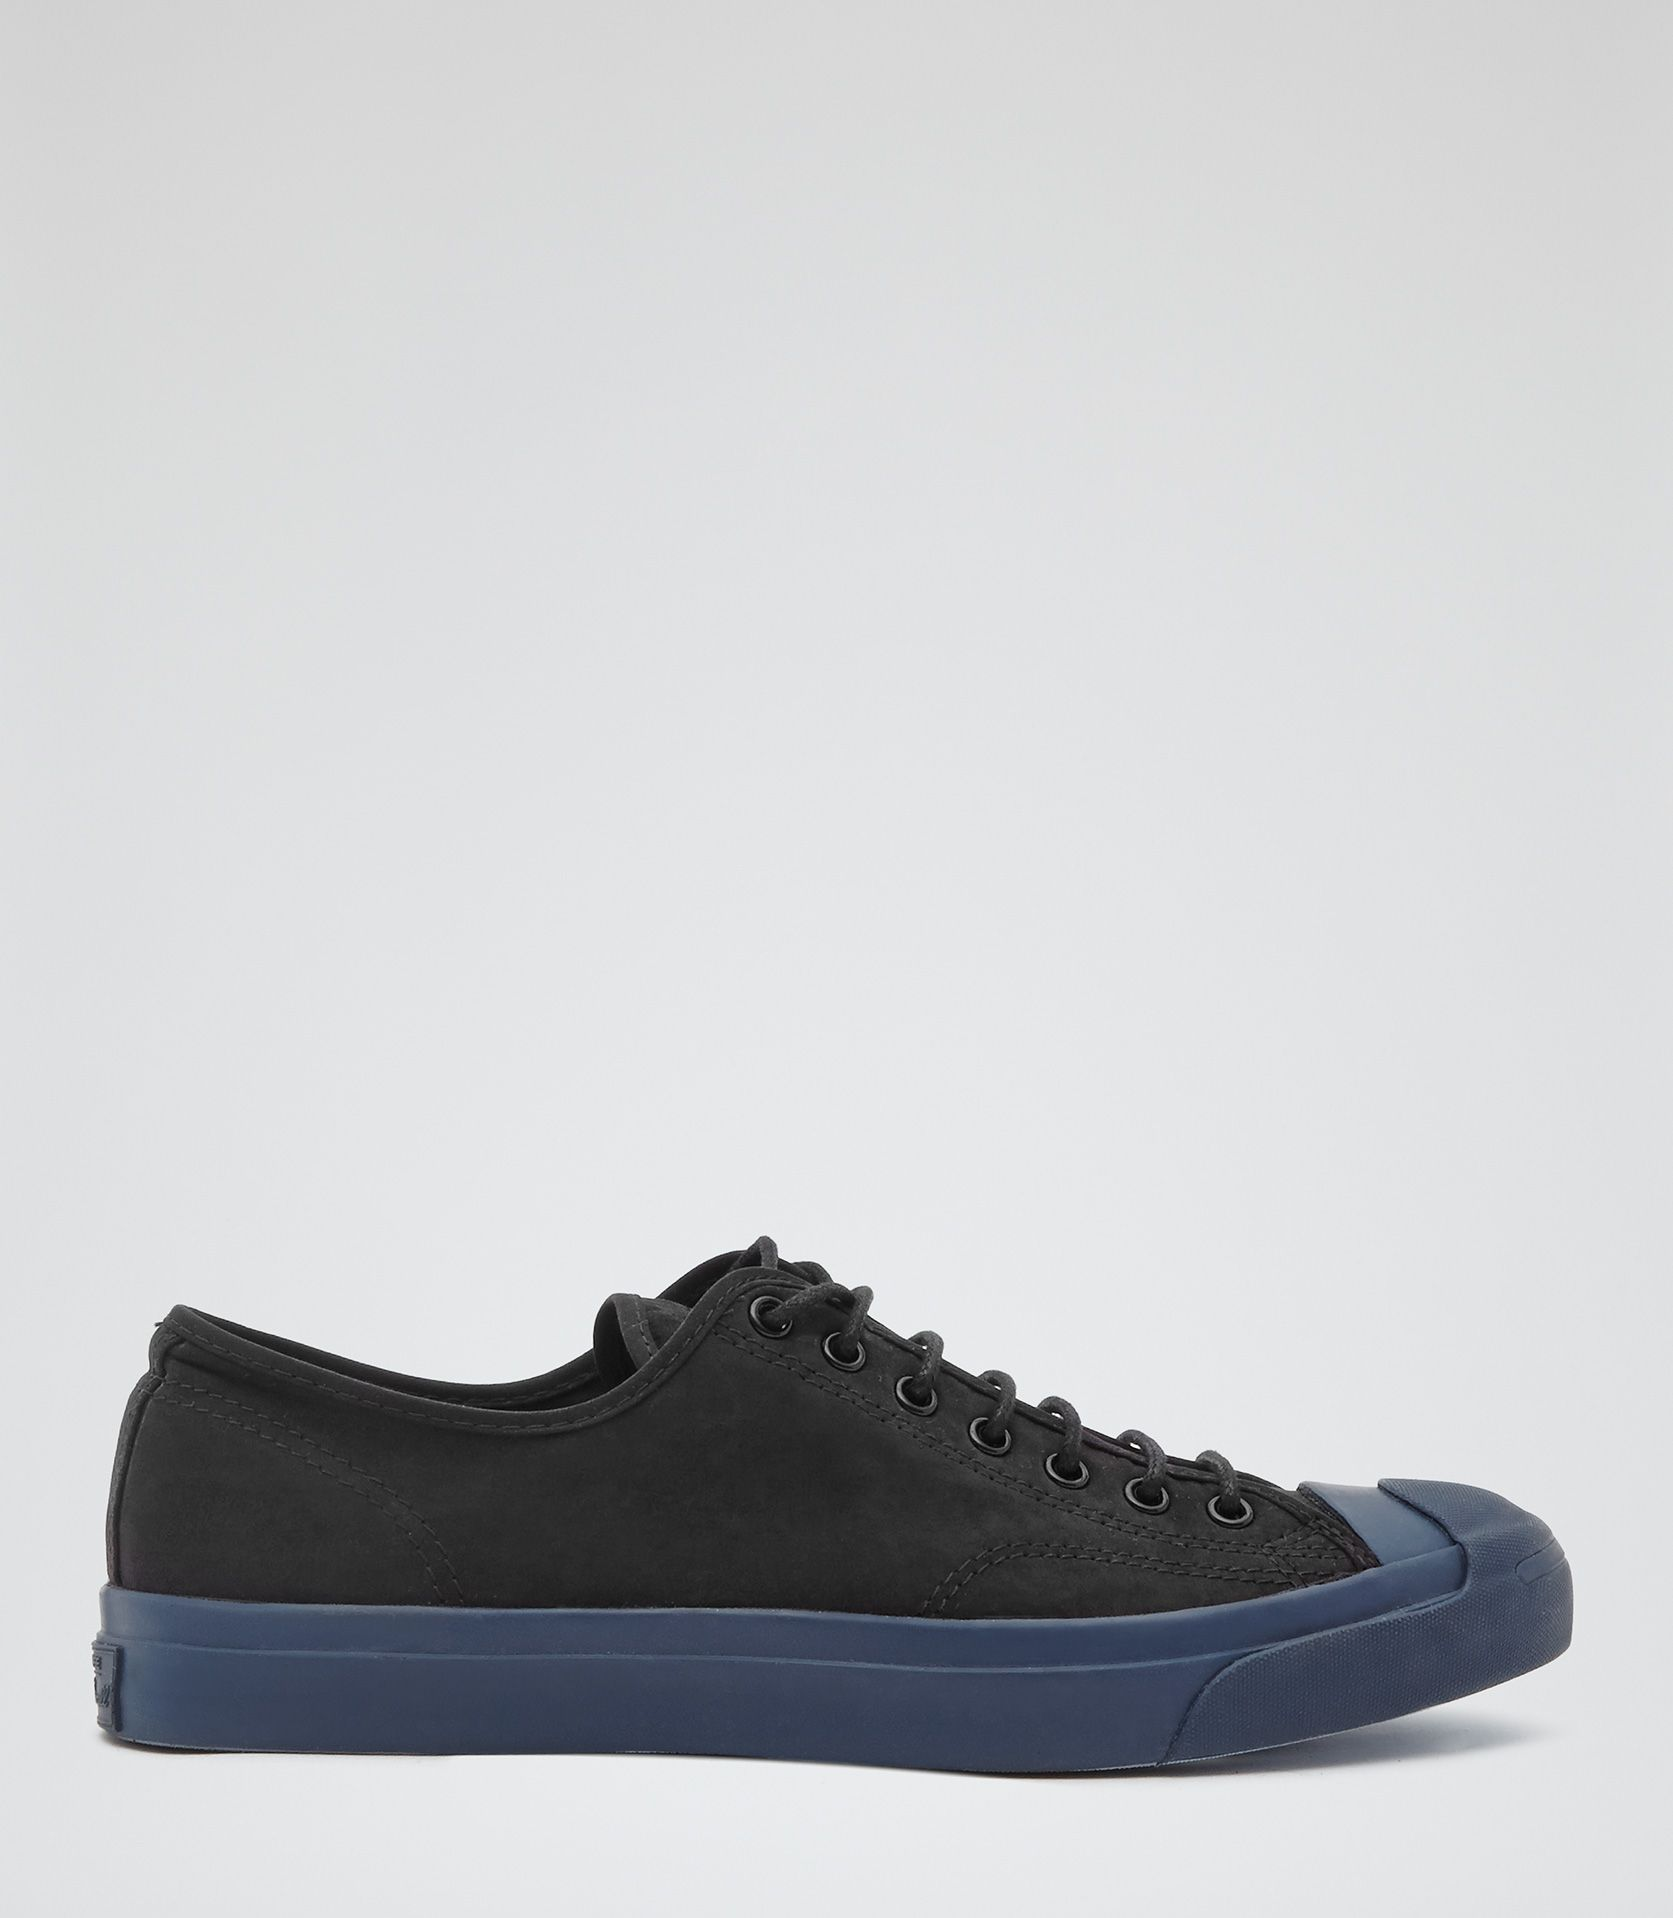 66b673d0359e Converse Jack Purcell Ox – Black   Navy